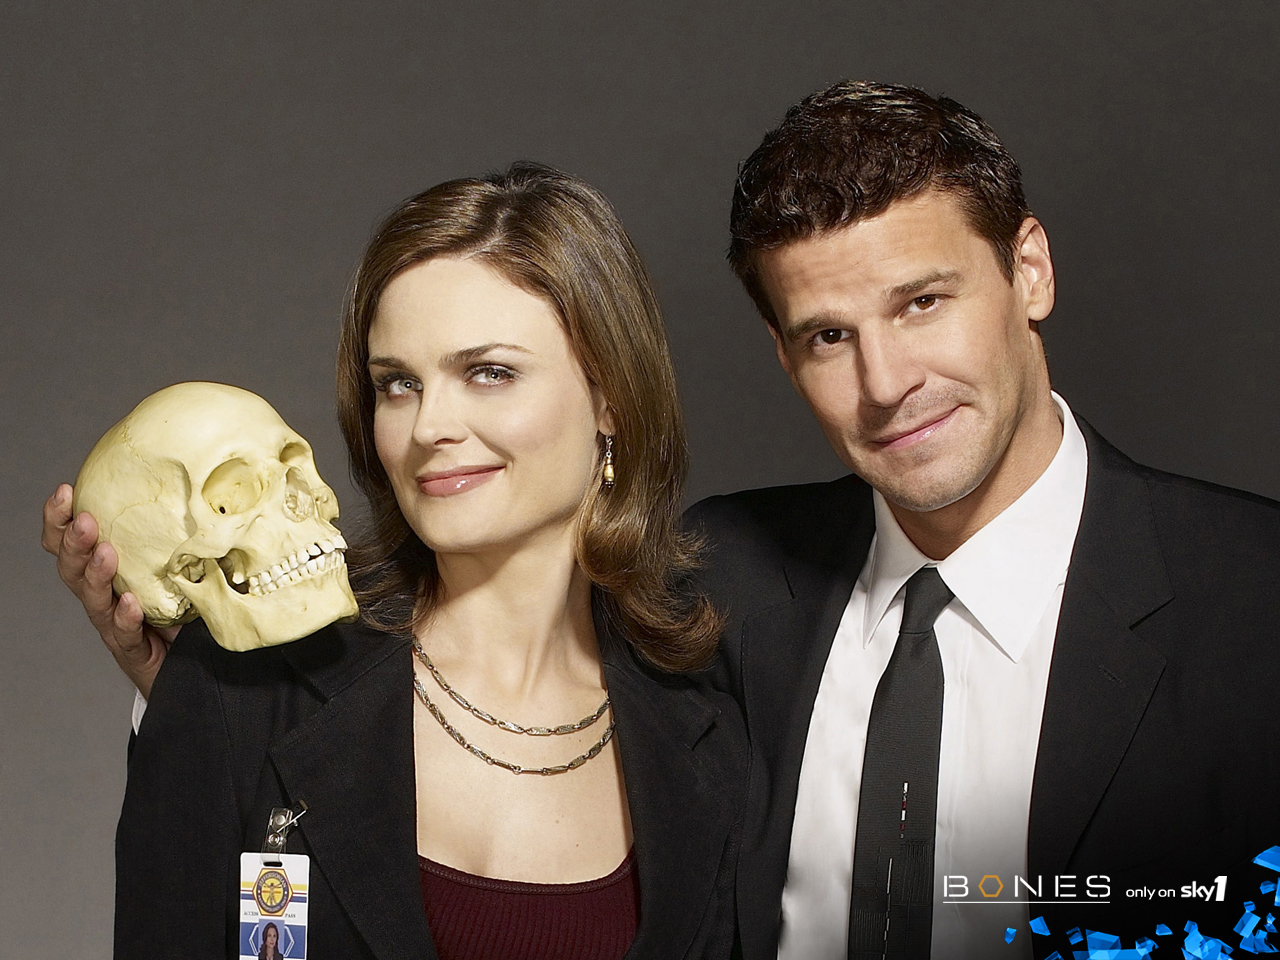 Bones – Episode 4.20 – The Pinocchio in the Planter Promo